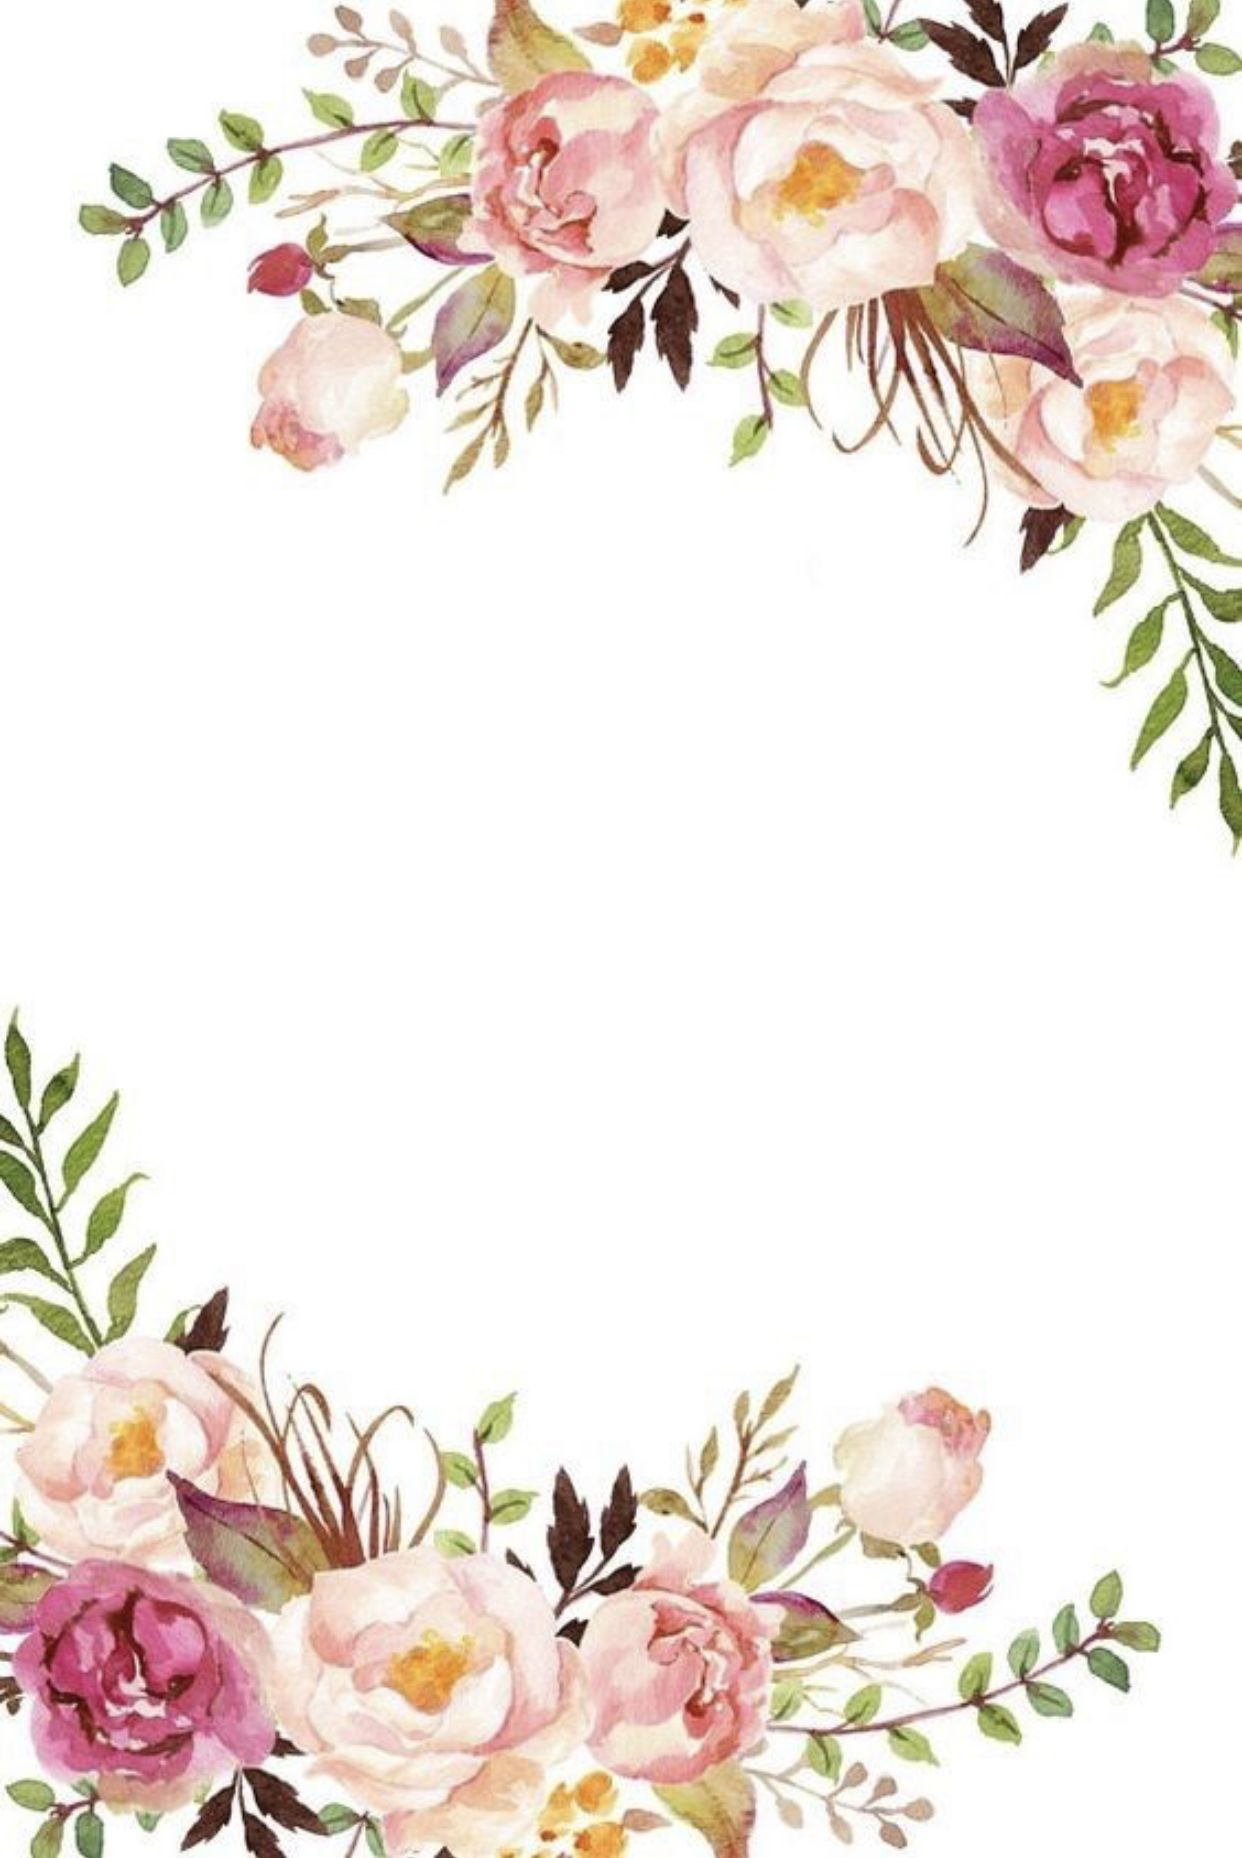 Pin By Kori Bonello On Esthetician Room Floral Background